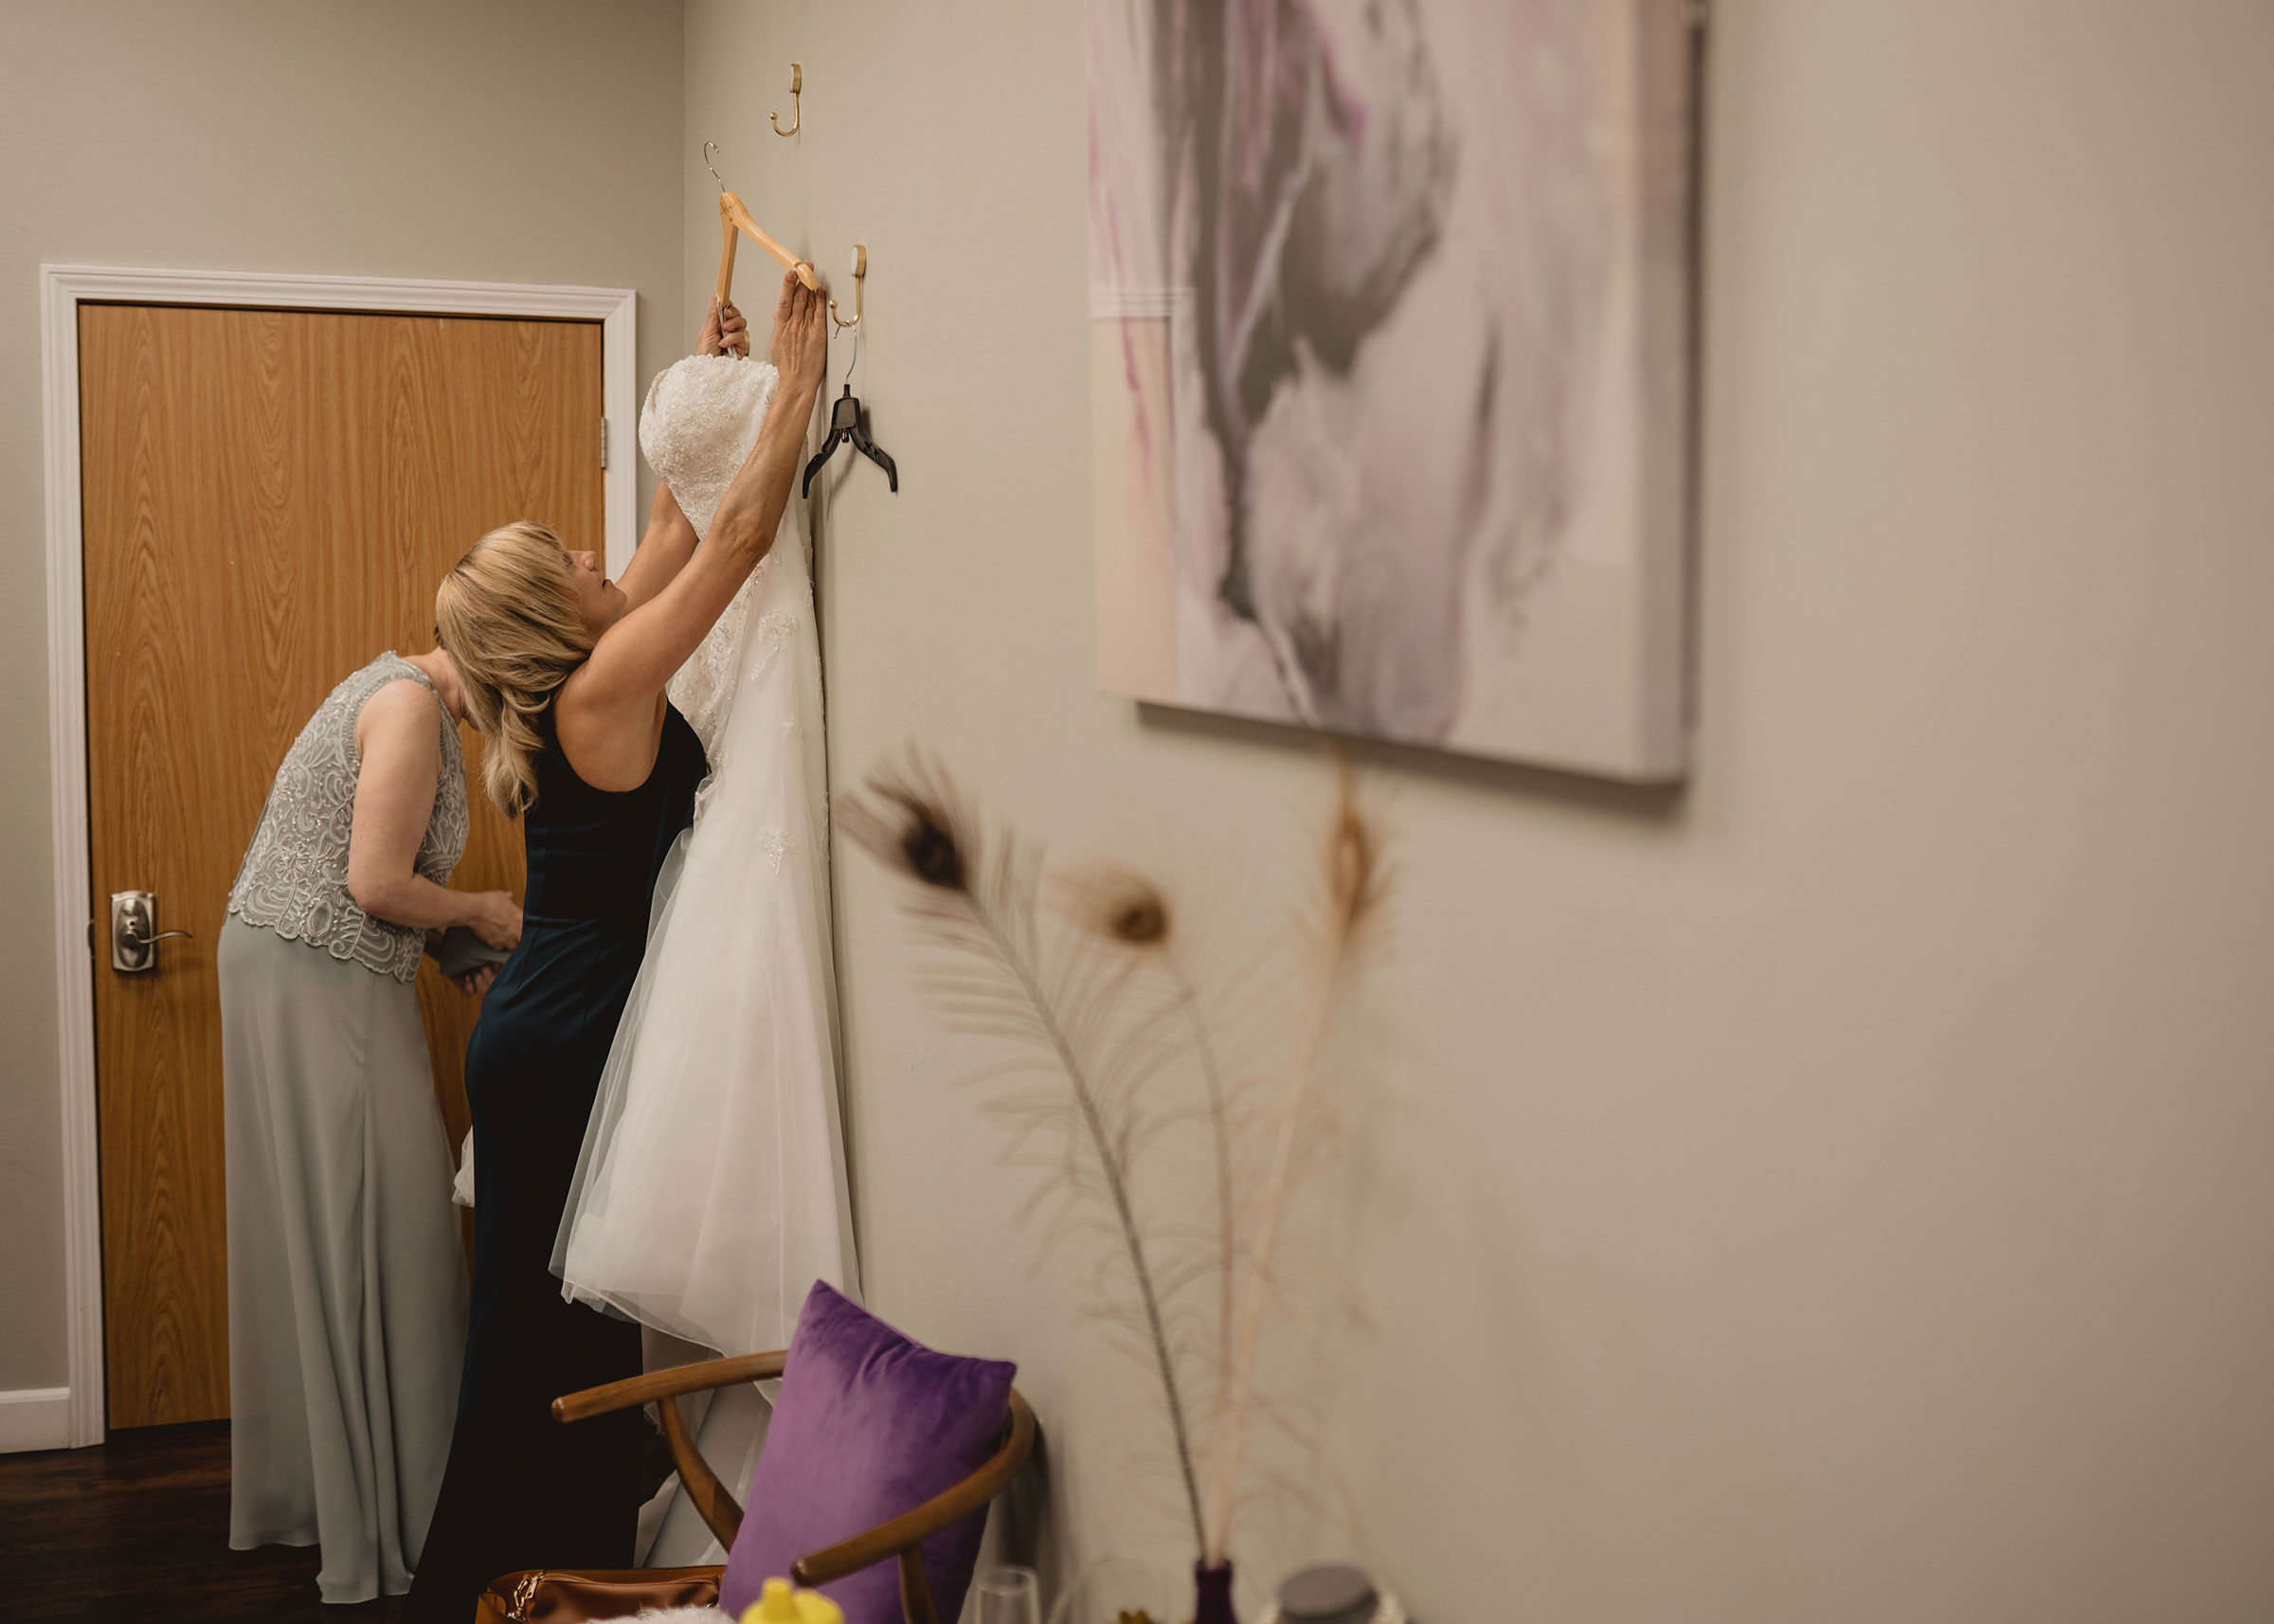 mother-of-bride-getting-bridal-dress-off-wall-decades-event-center-building-desmoines-iowa-raelyn-ramey-photography..jpg